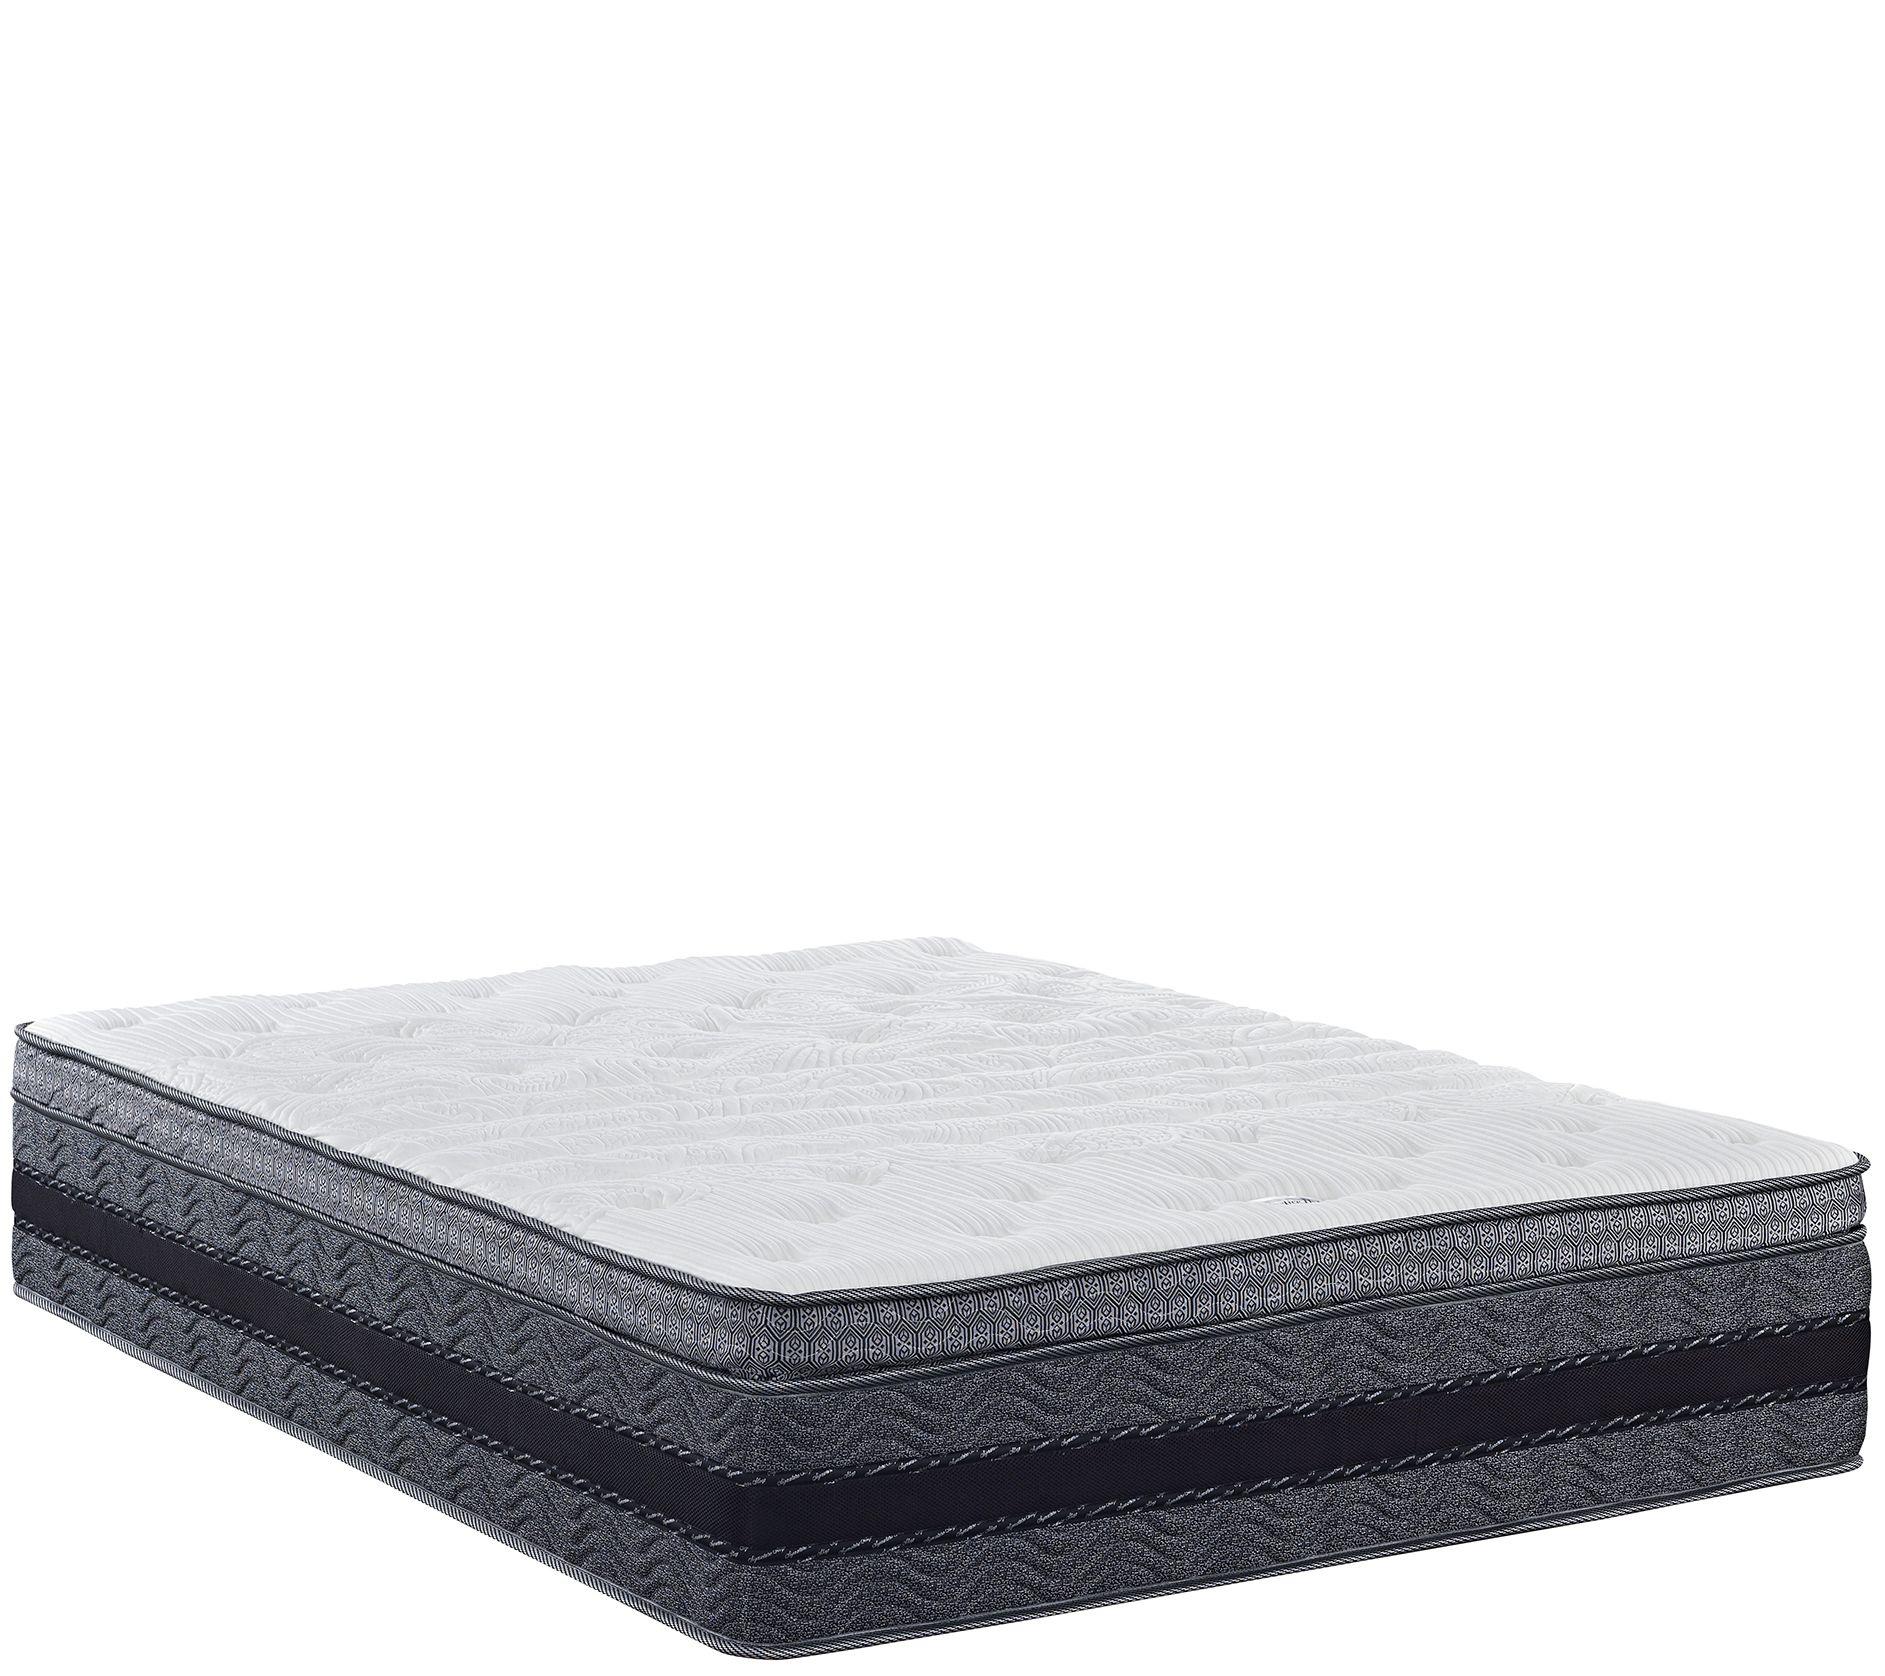 us com sleep support inch premium justice aura with gel queen amazon memory dp certified foam firm kitchen cool signature mattress certipur